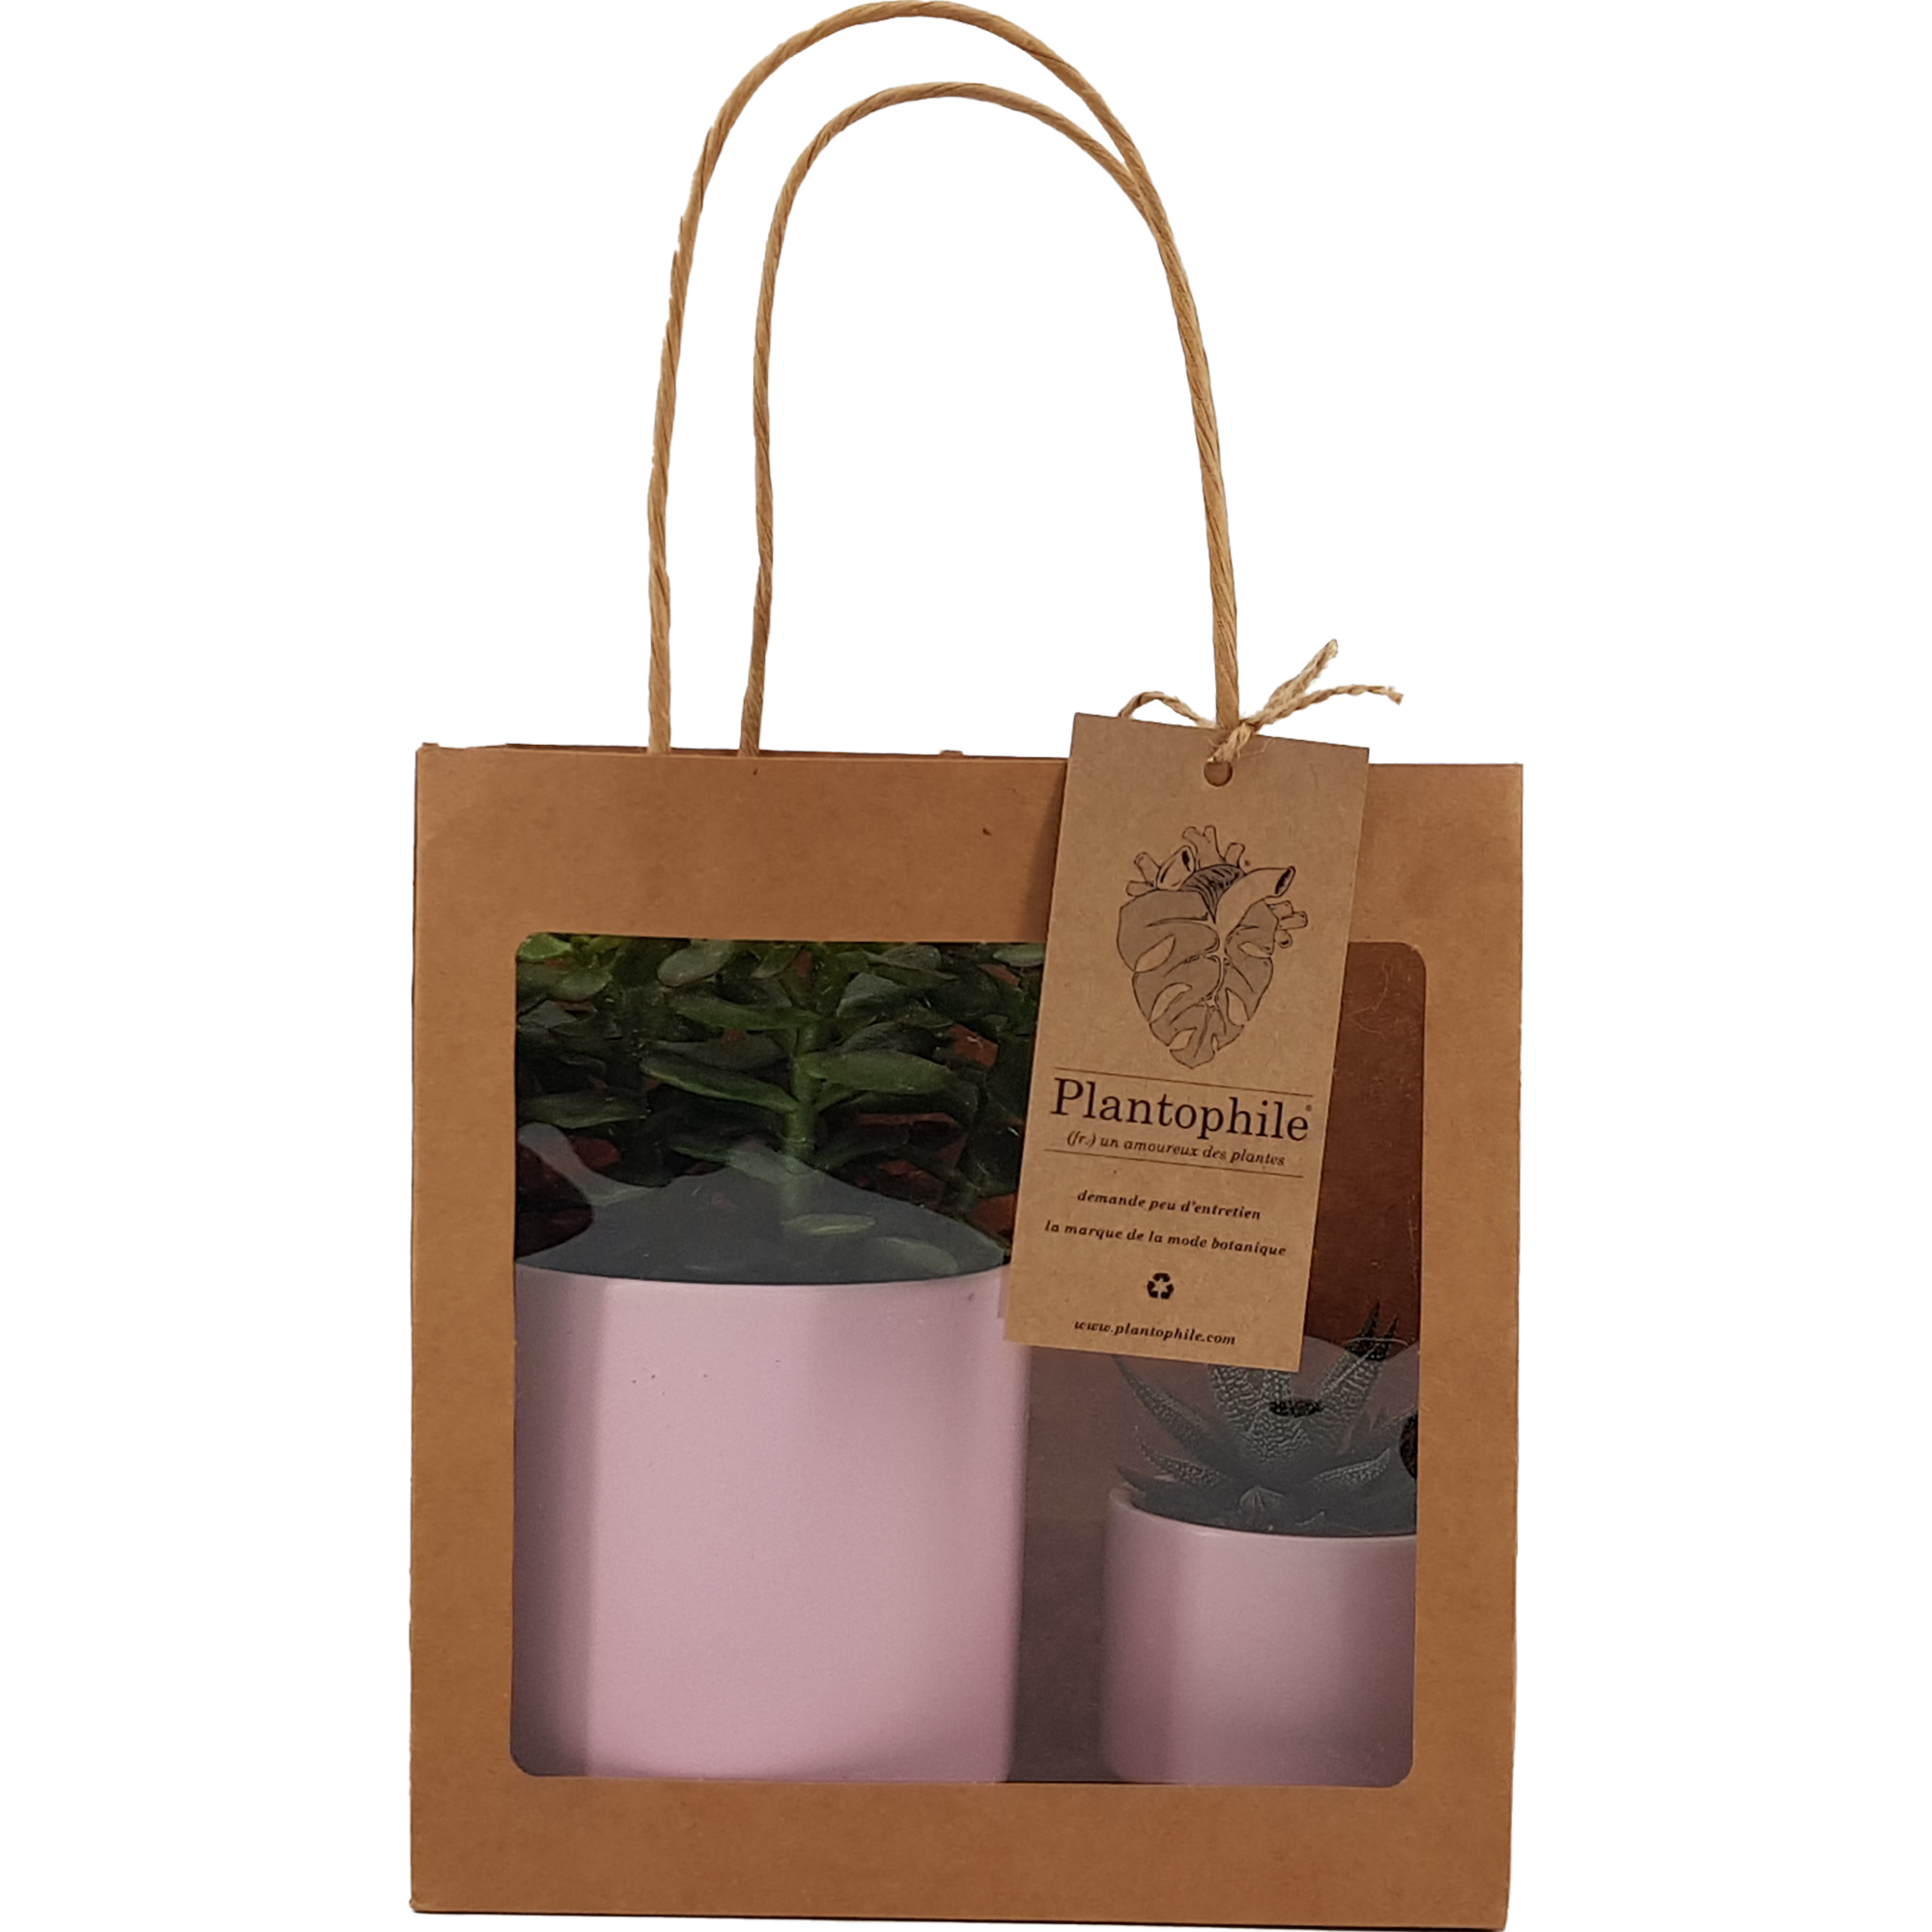 Succulent plants in trendy, planters and giftbag